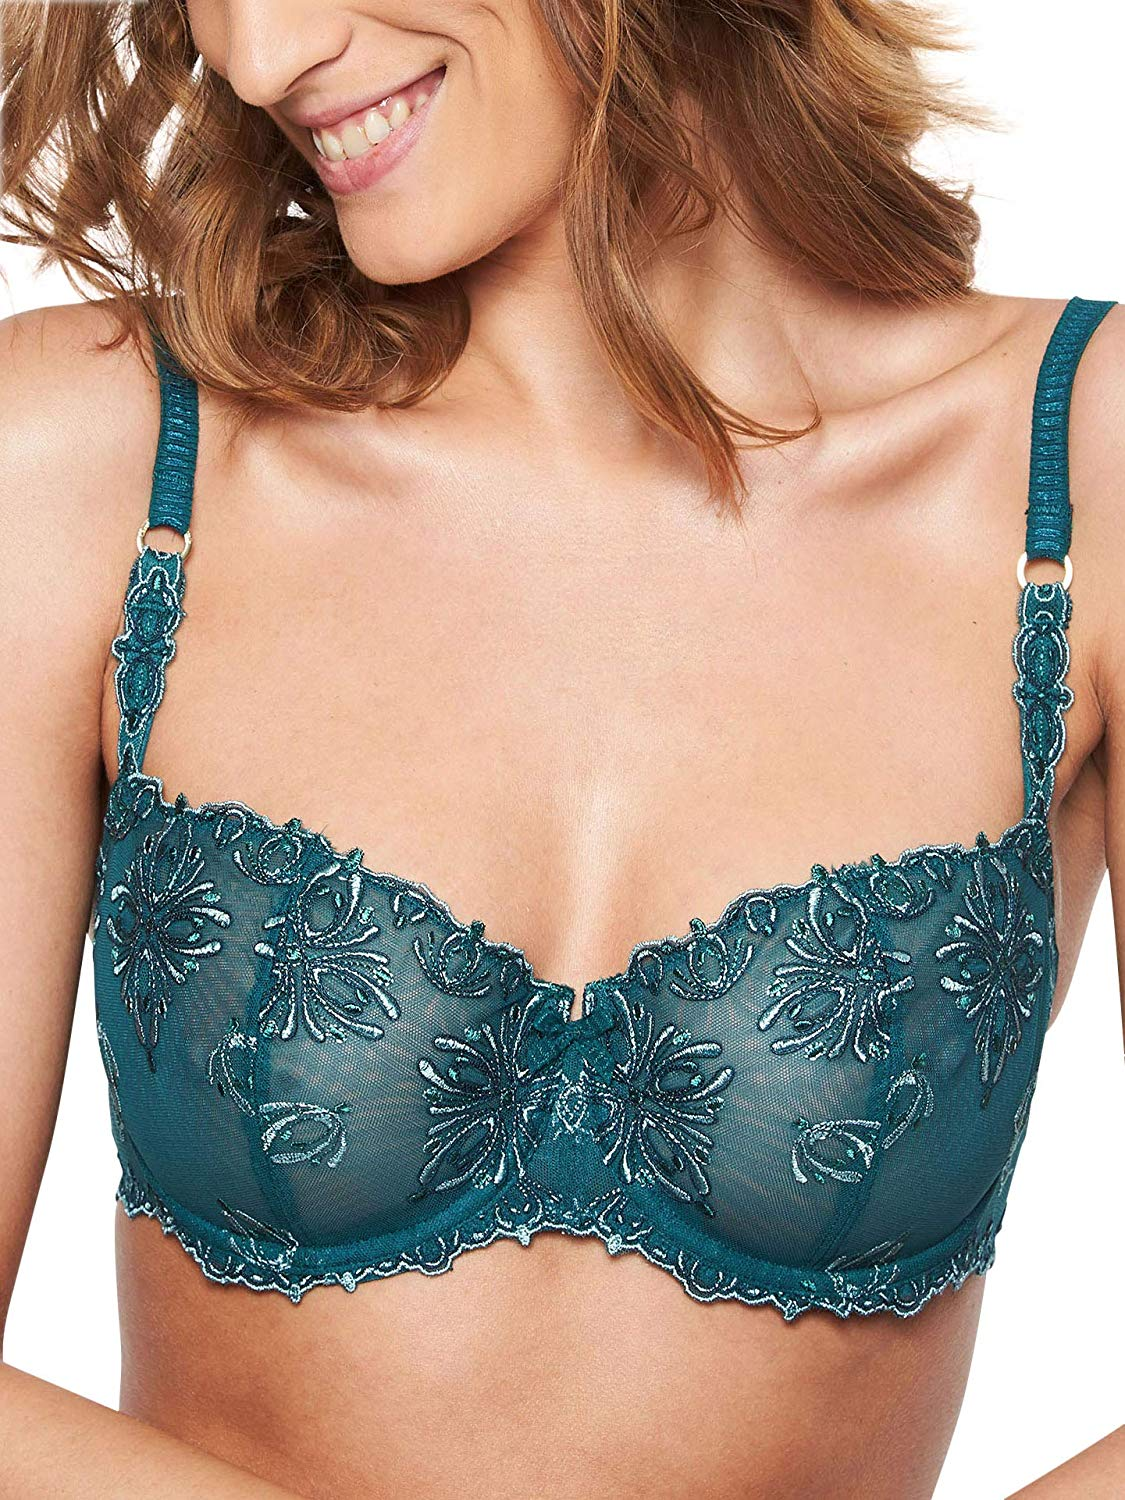 55753cad35 Get Quotations · Chantelle Champs Elysees Lace Unlined Demi Bra (2605)